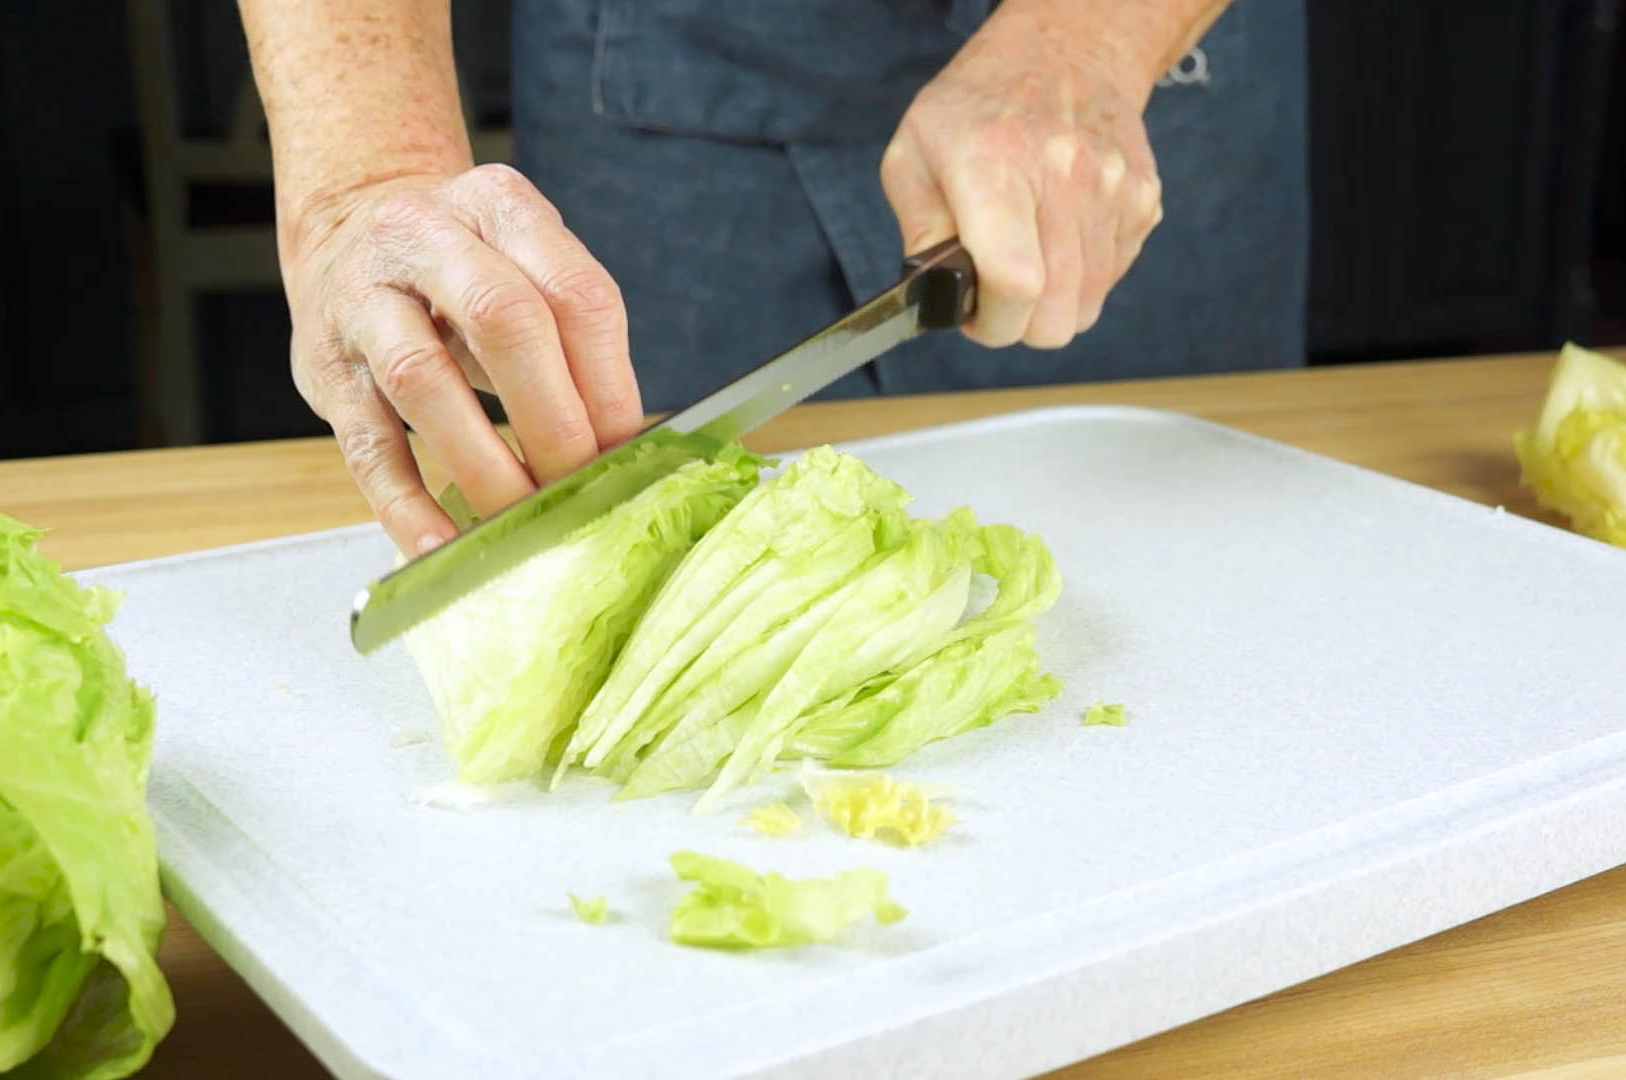 How to Shred Lettuce